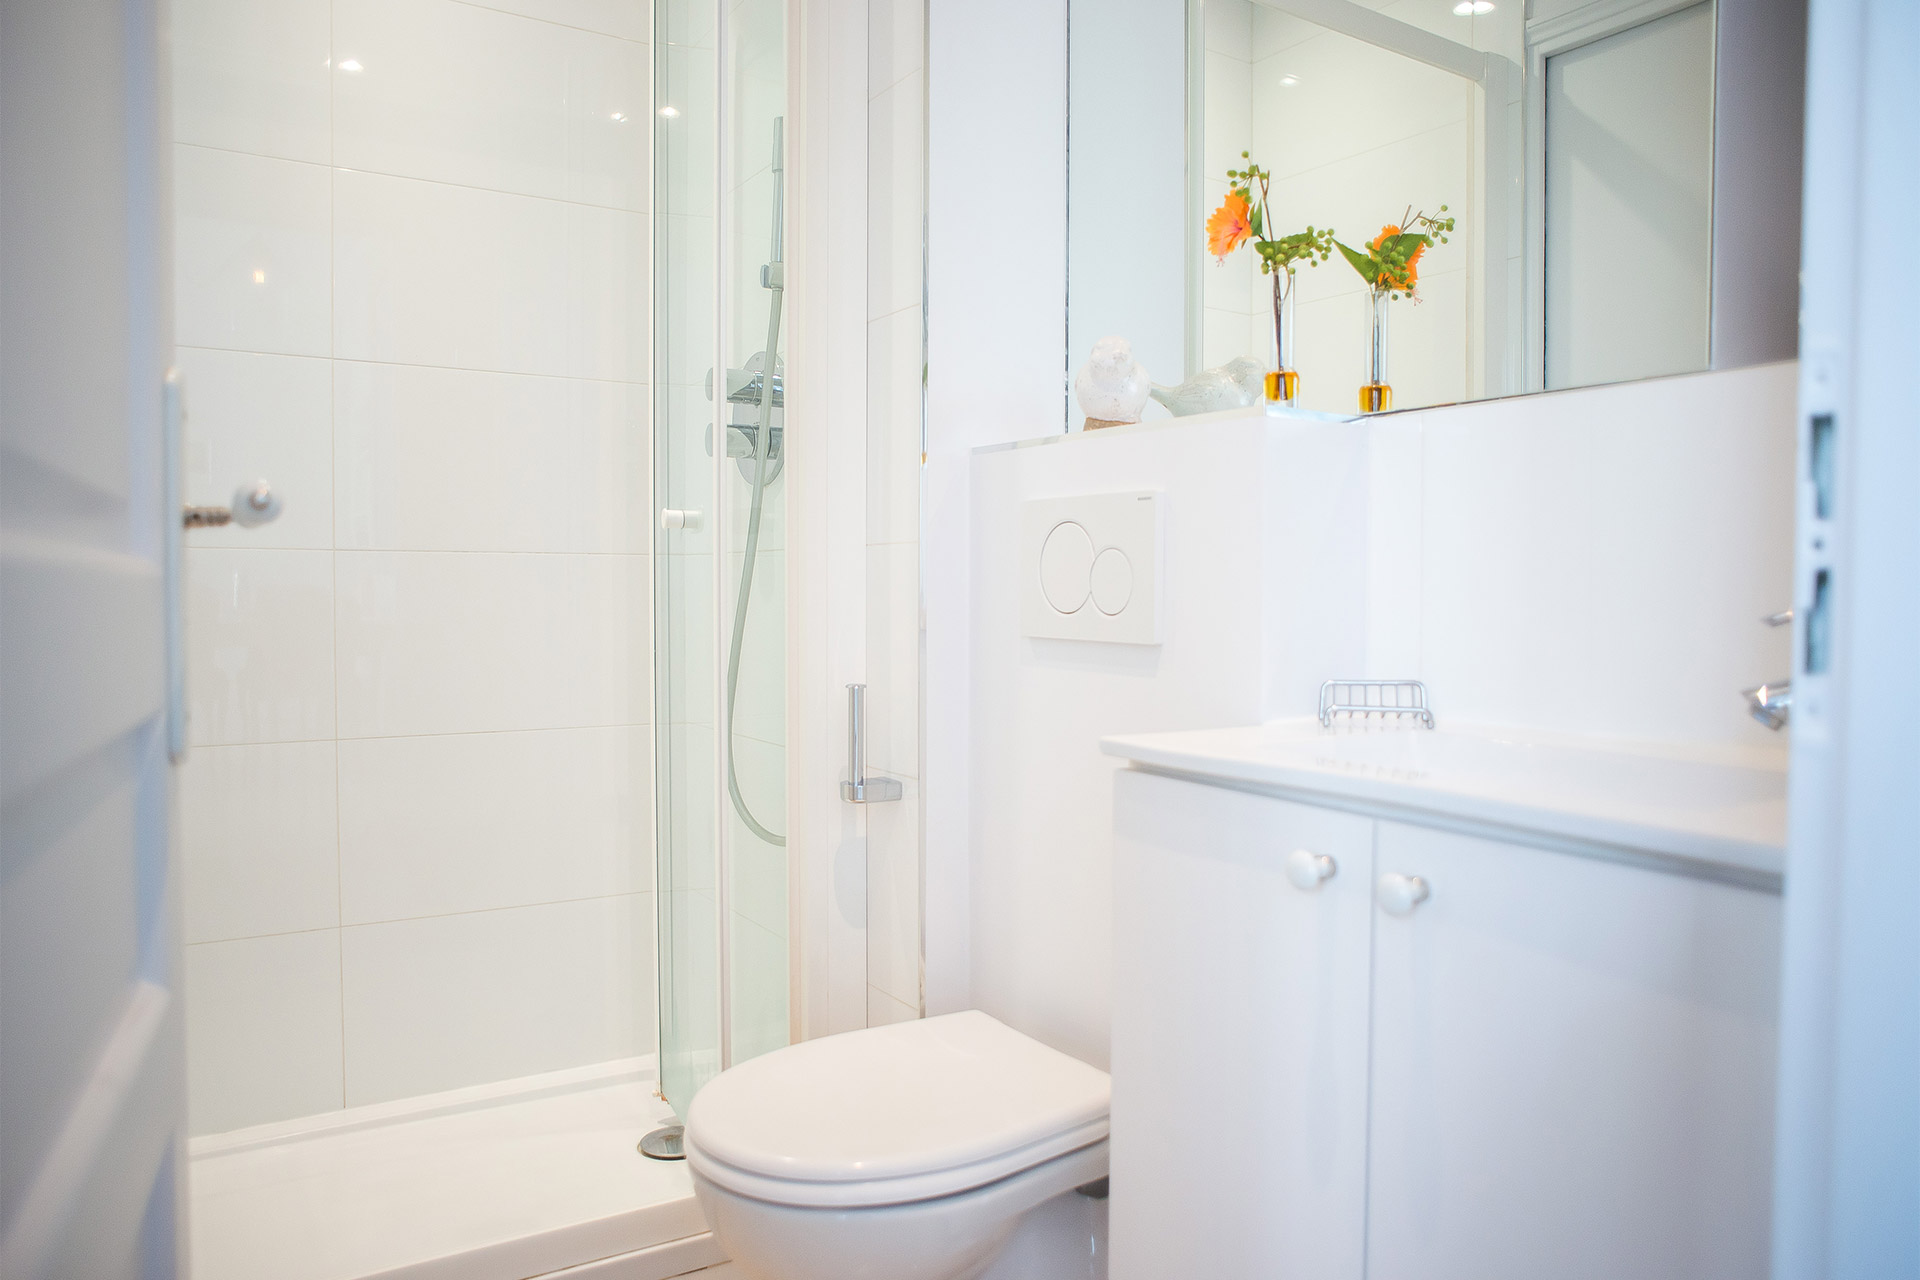 Second bathroom of the Bel-Air vacation rental offered by Paris Perfect